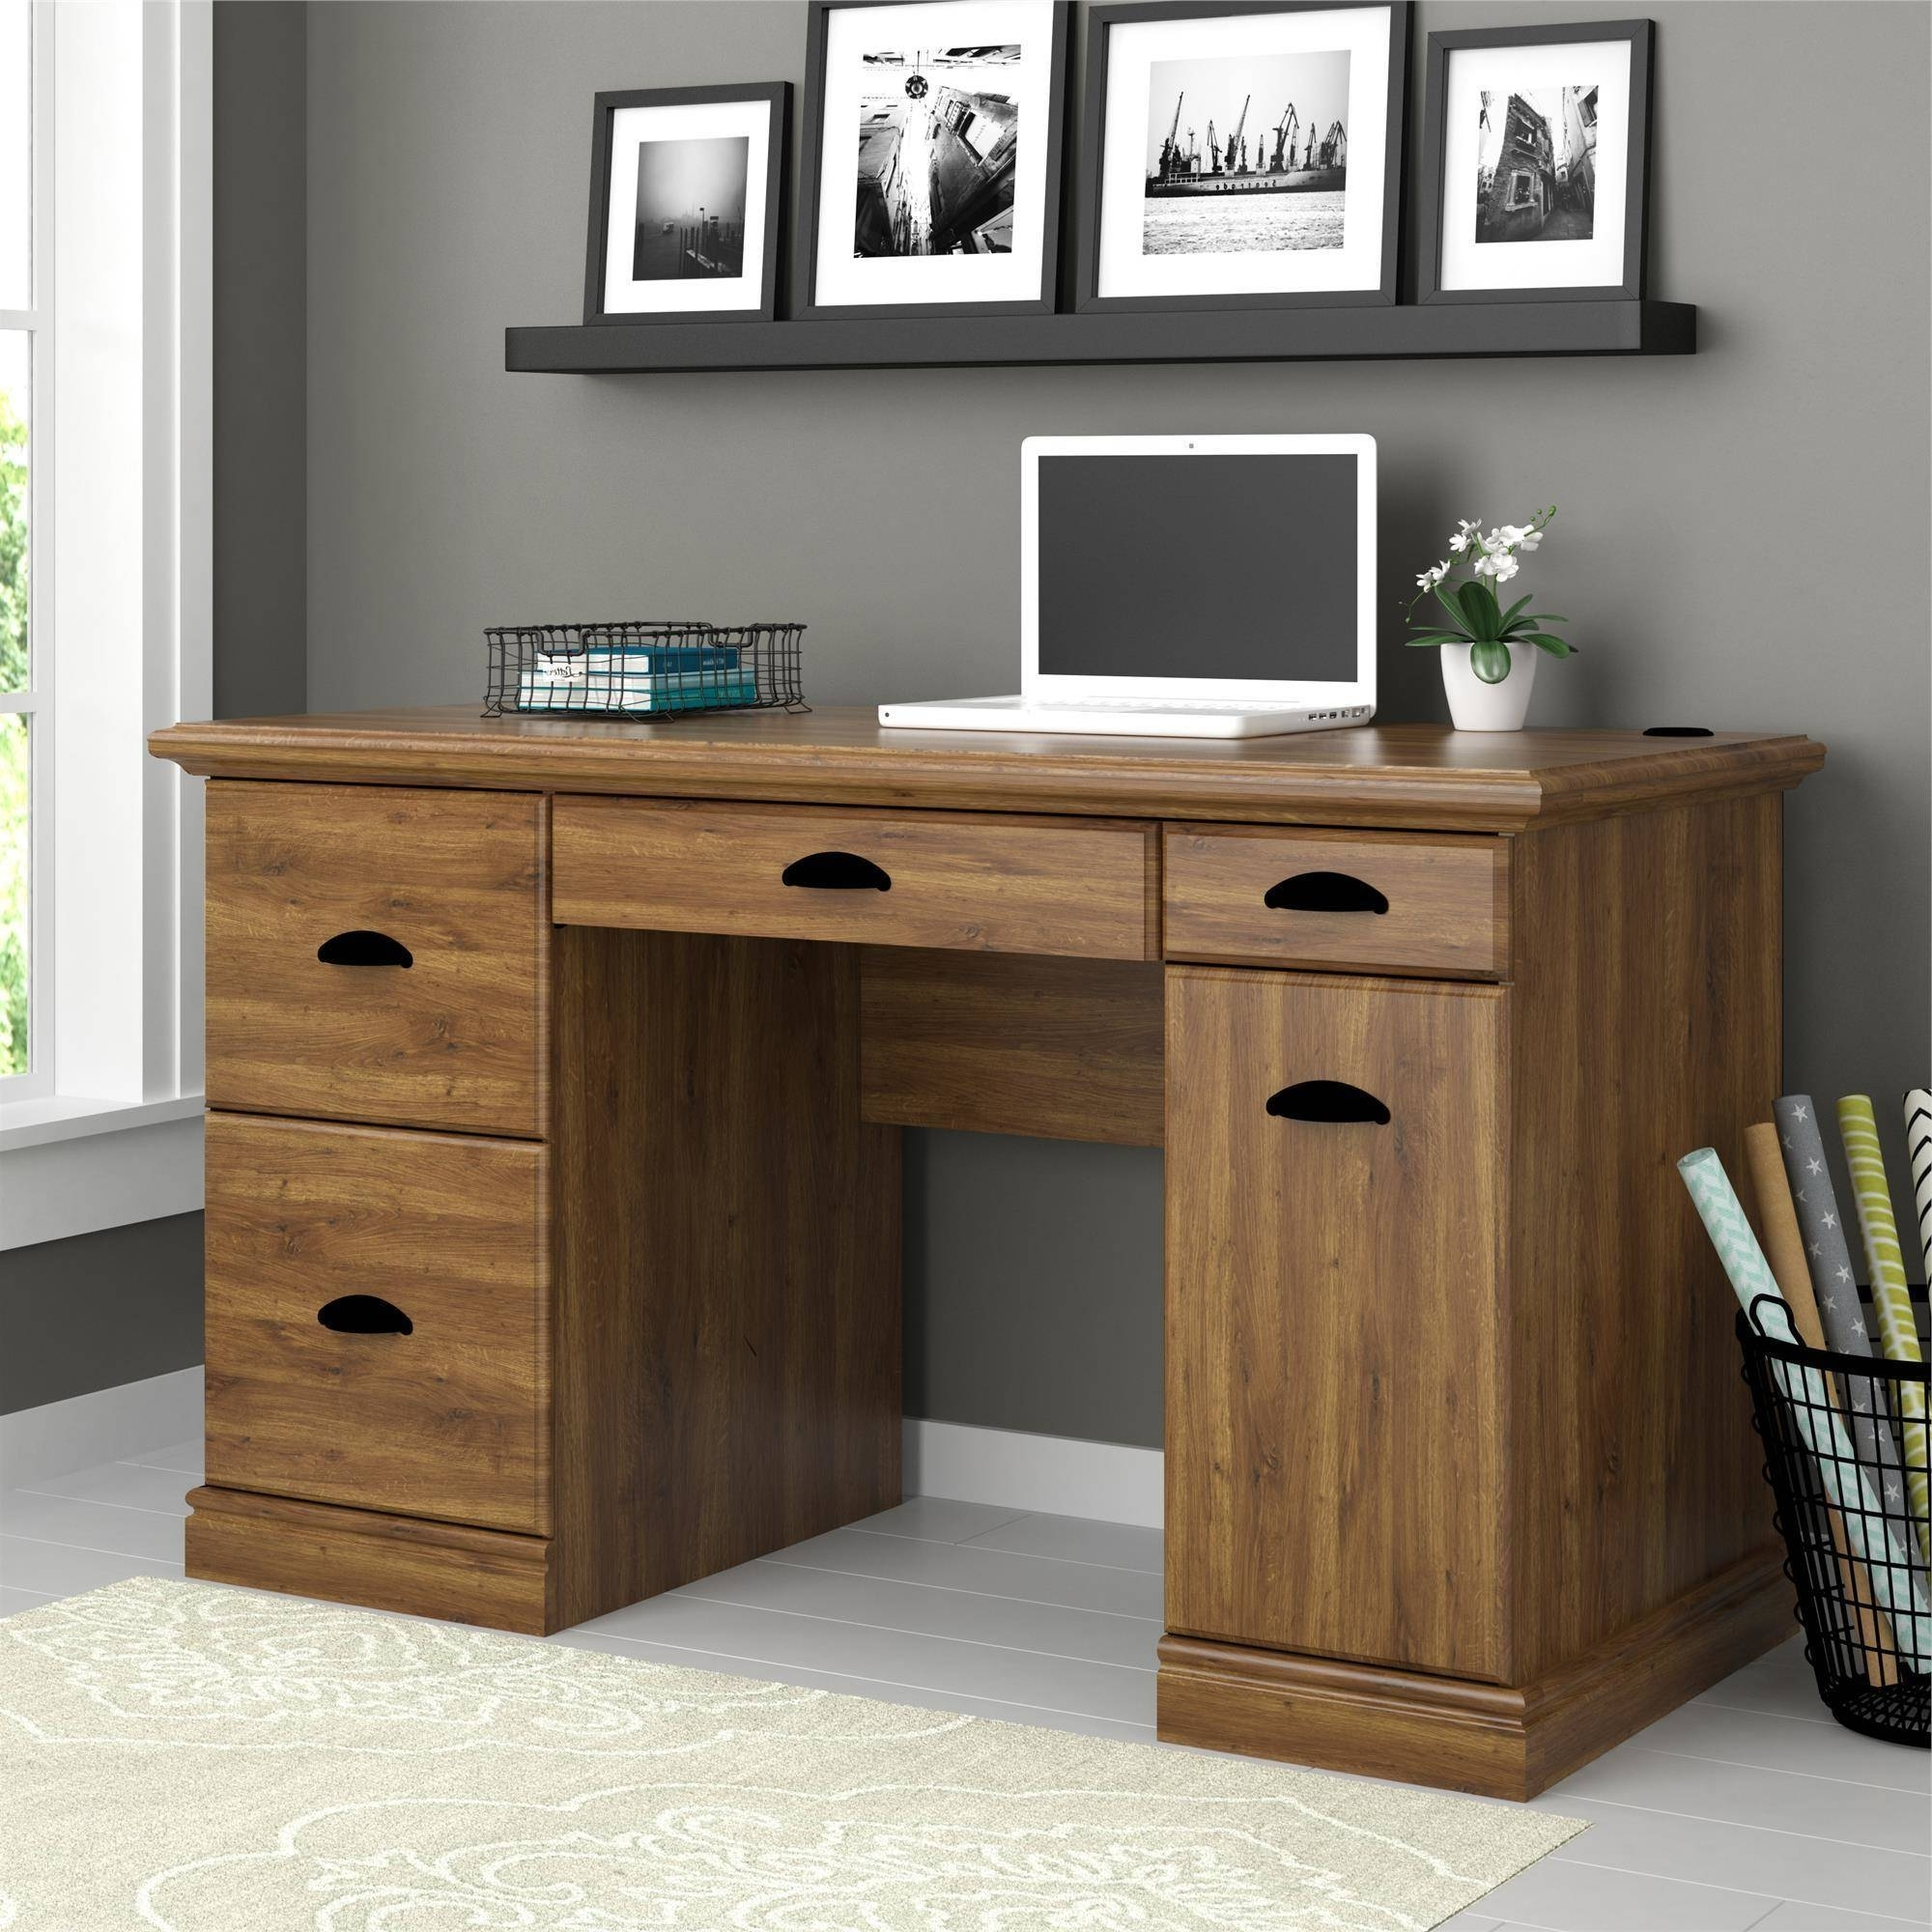 Better Homes And Gardens Computer Desk, Brown Oak – Walmart With Best And Newest Brown Computer Desks (View 15 of 20)